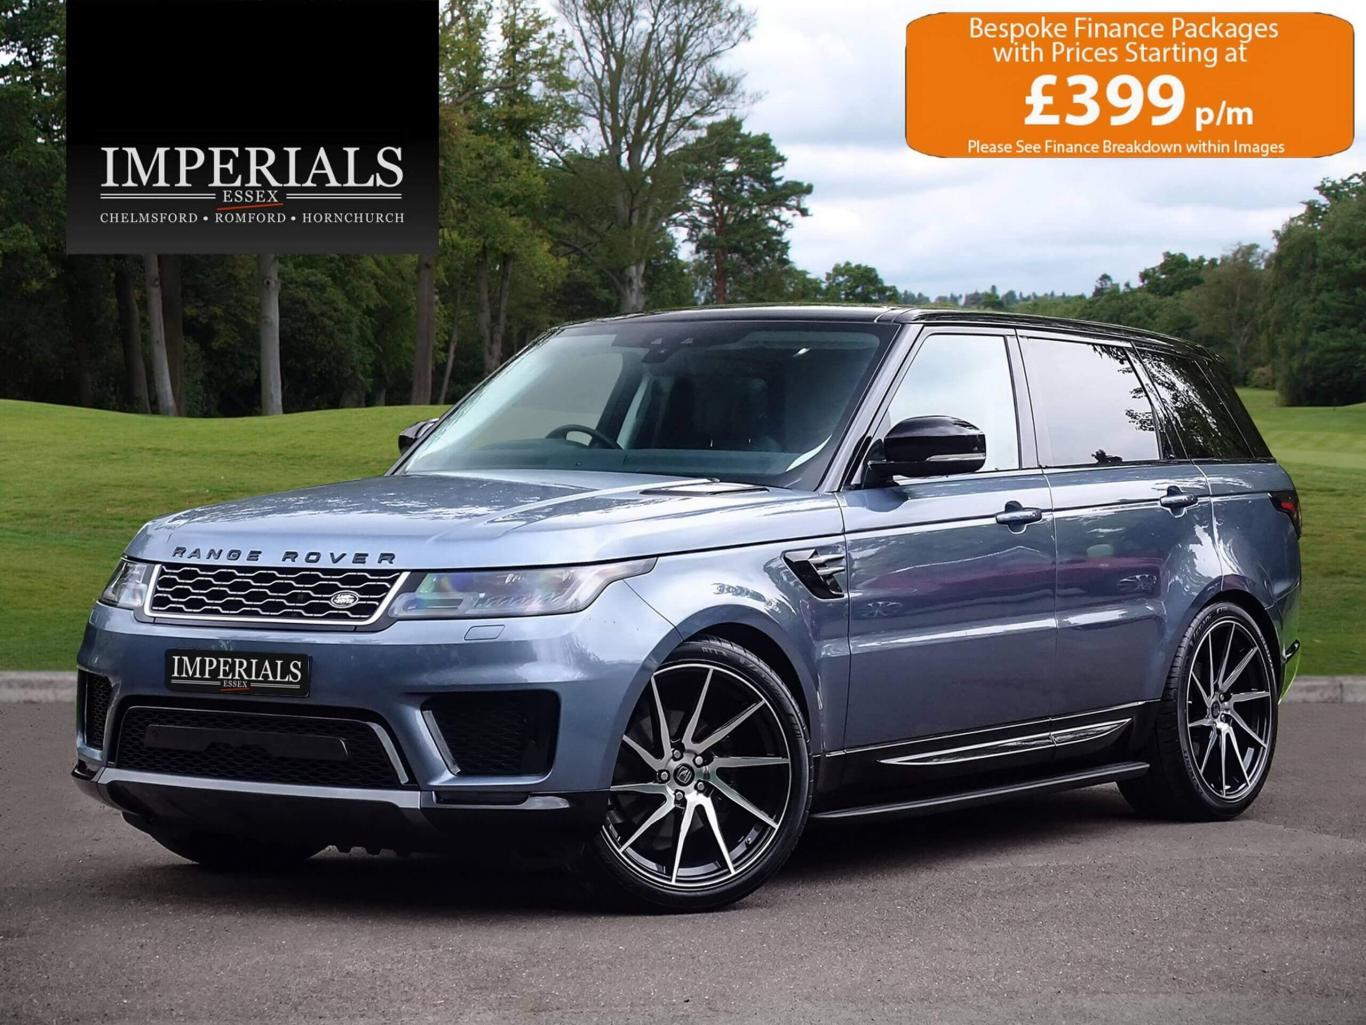 Range Rover Sport >> Land Rover Range Rover Sport 30 Sdv6 Eu6 2018 Model 8 Spee 4x4 Byron Blue With Contrast Black Roof A